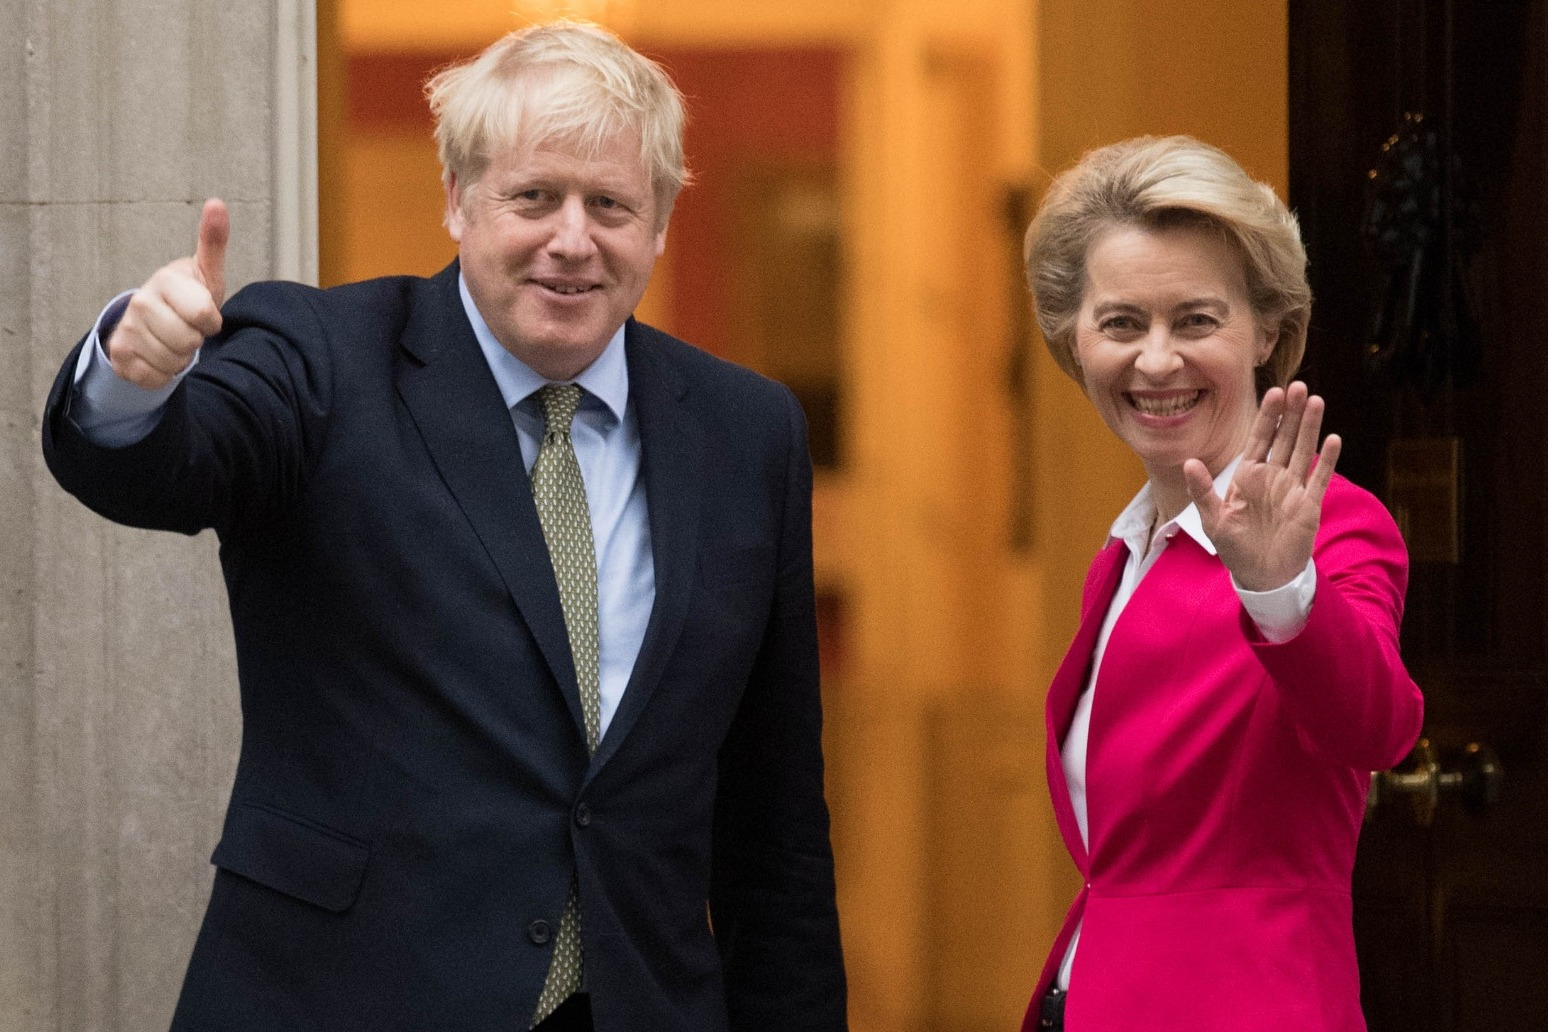 PM 'pretty optimistic' about Brexit trade deal as UK and EU take stock on talks